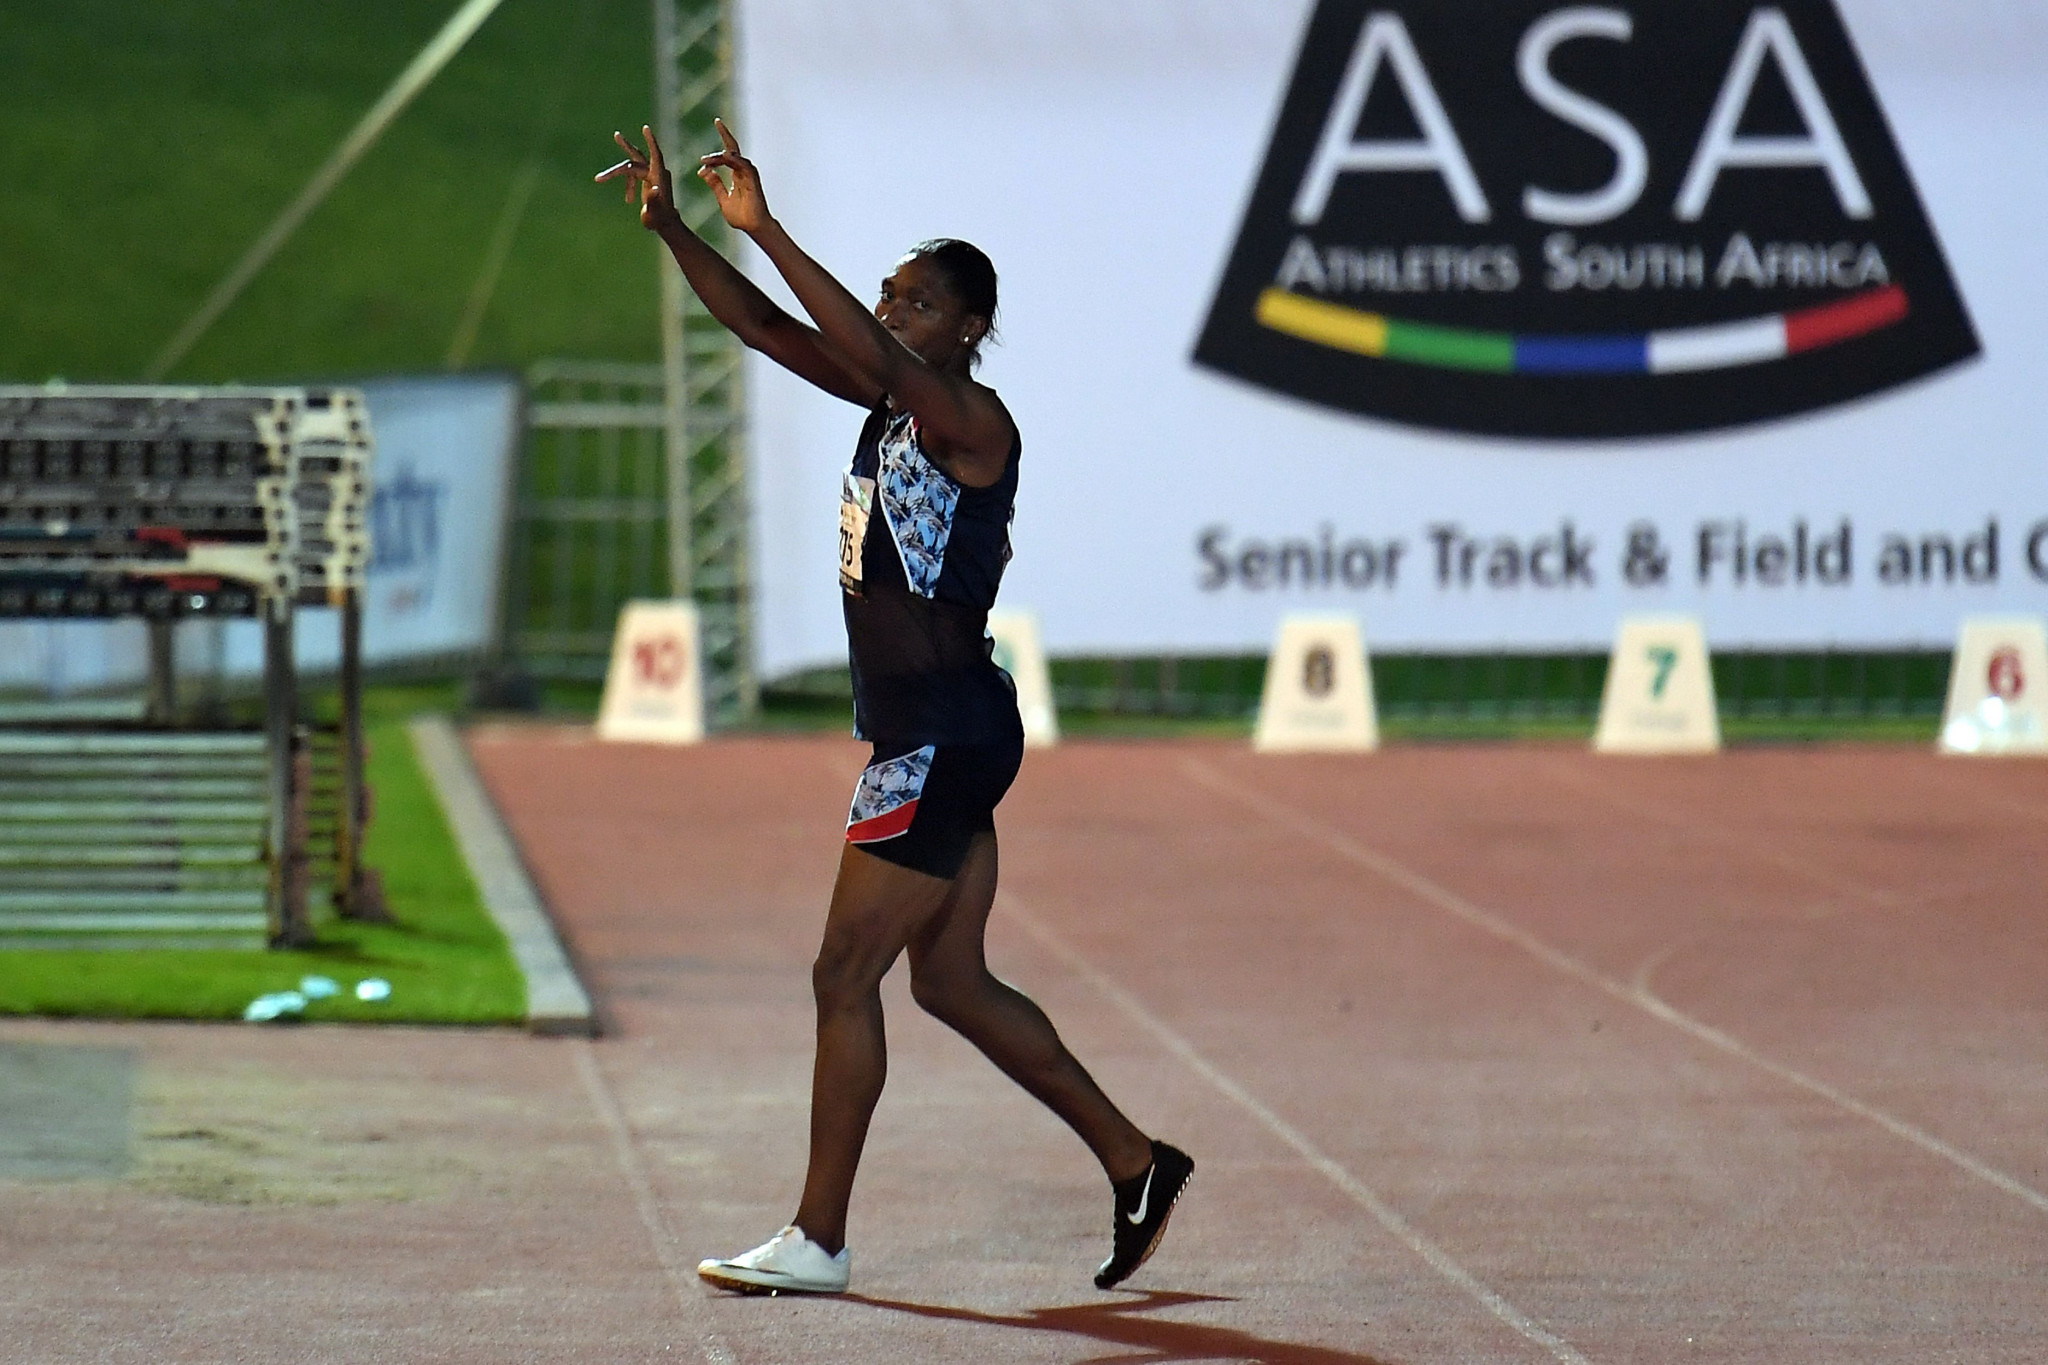 World Medical Association calls on members not to implement IAAF regulations following Semenya CAS verdict